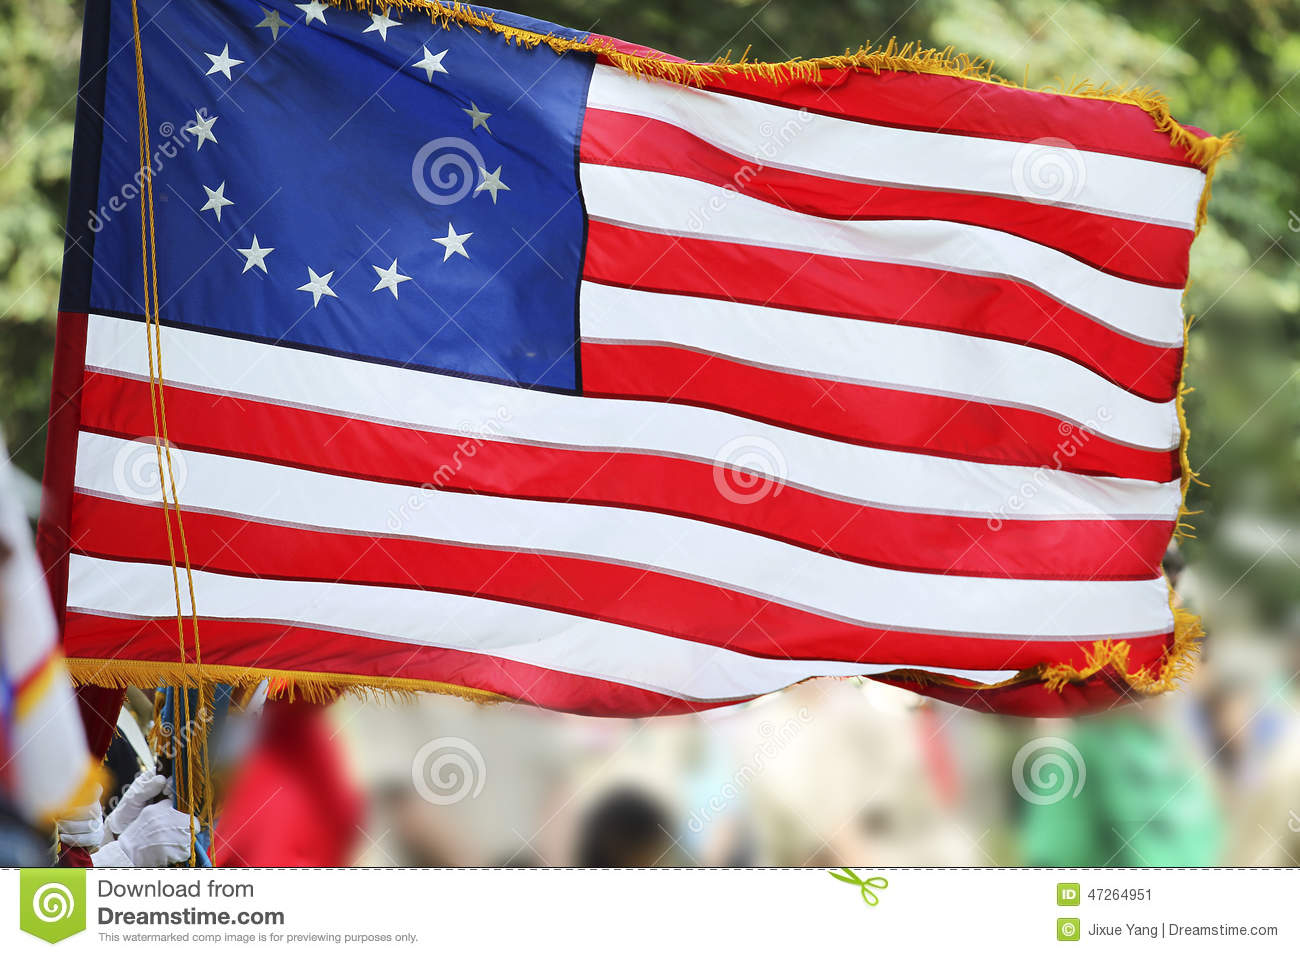 Betsy Ross Flag With Thirteen Stars and Stripes